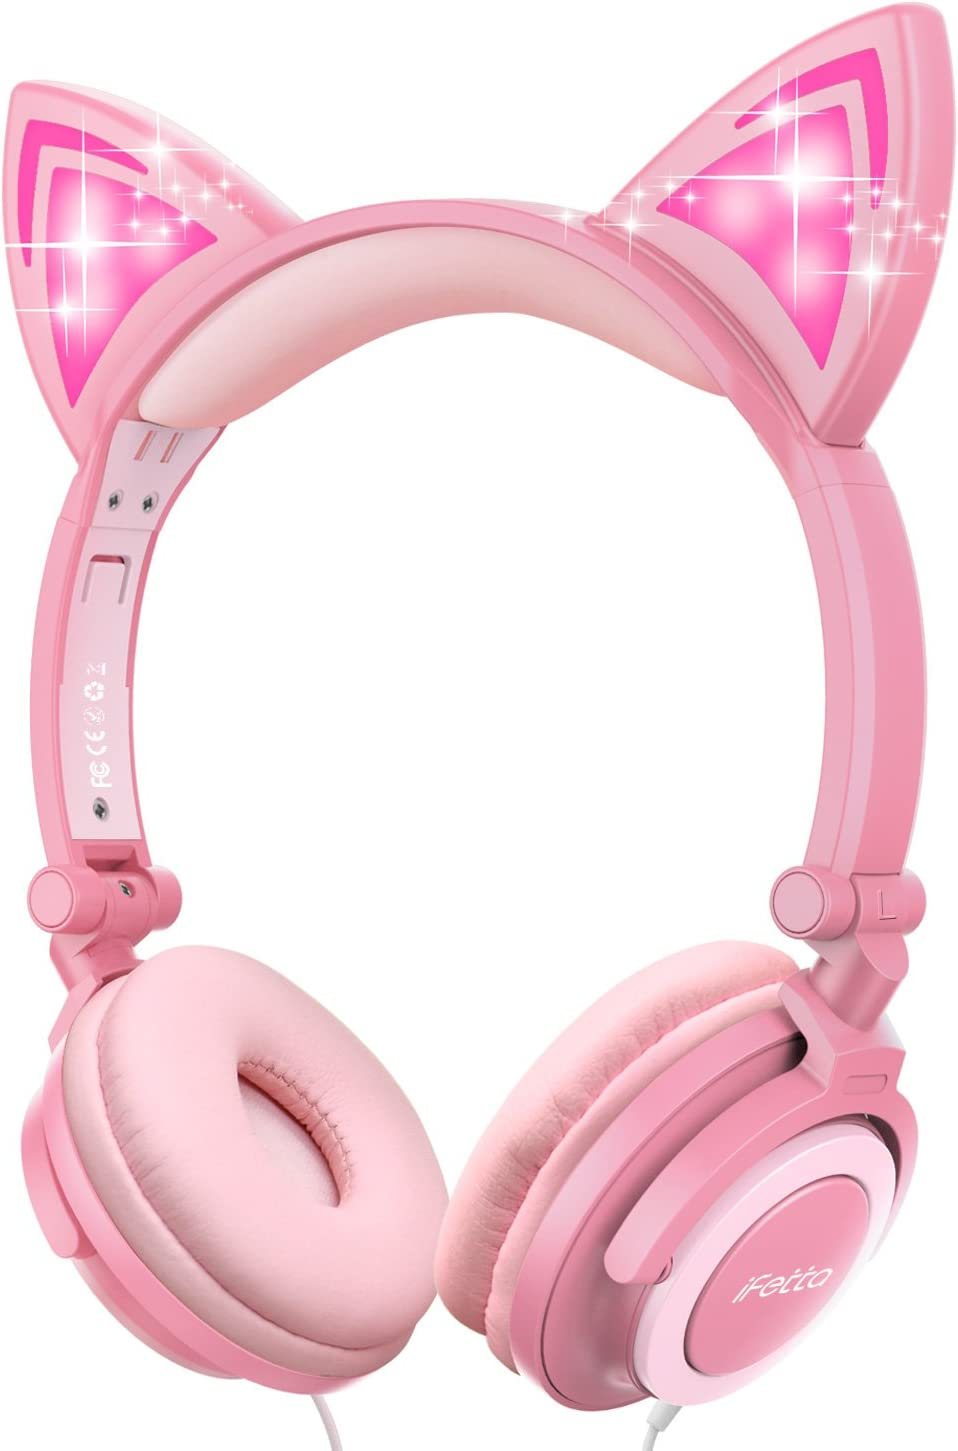 Amazon Com Ifecco Kids Headphones Boys Girls Teens Foldable Adjustable Wired On Ear Headset 3 5mm Aux Jack Stereo Tangle Free 85 Db Volume Limited Childrens Headphones For School Home Travel Pink Electronics